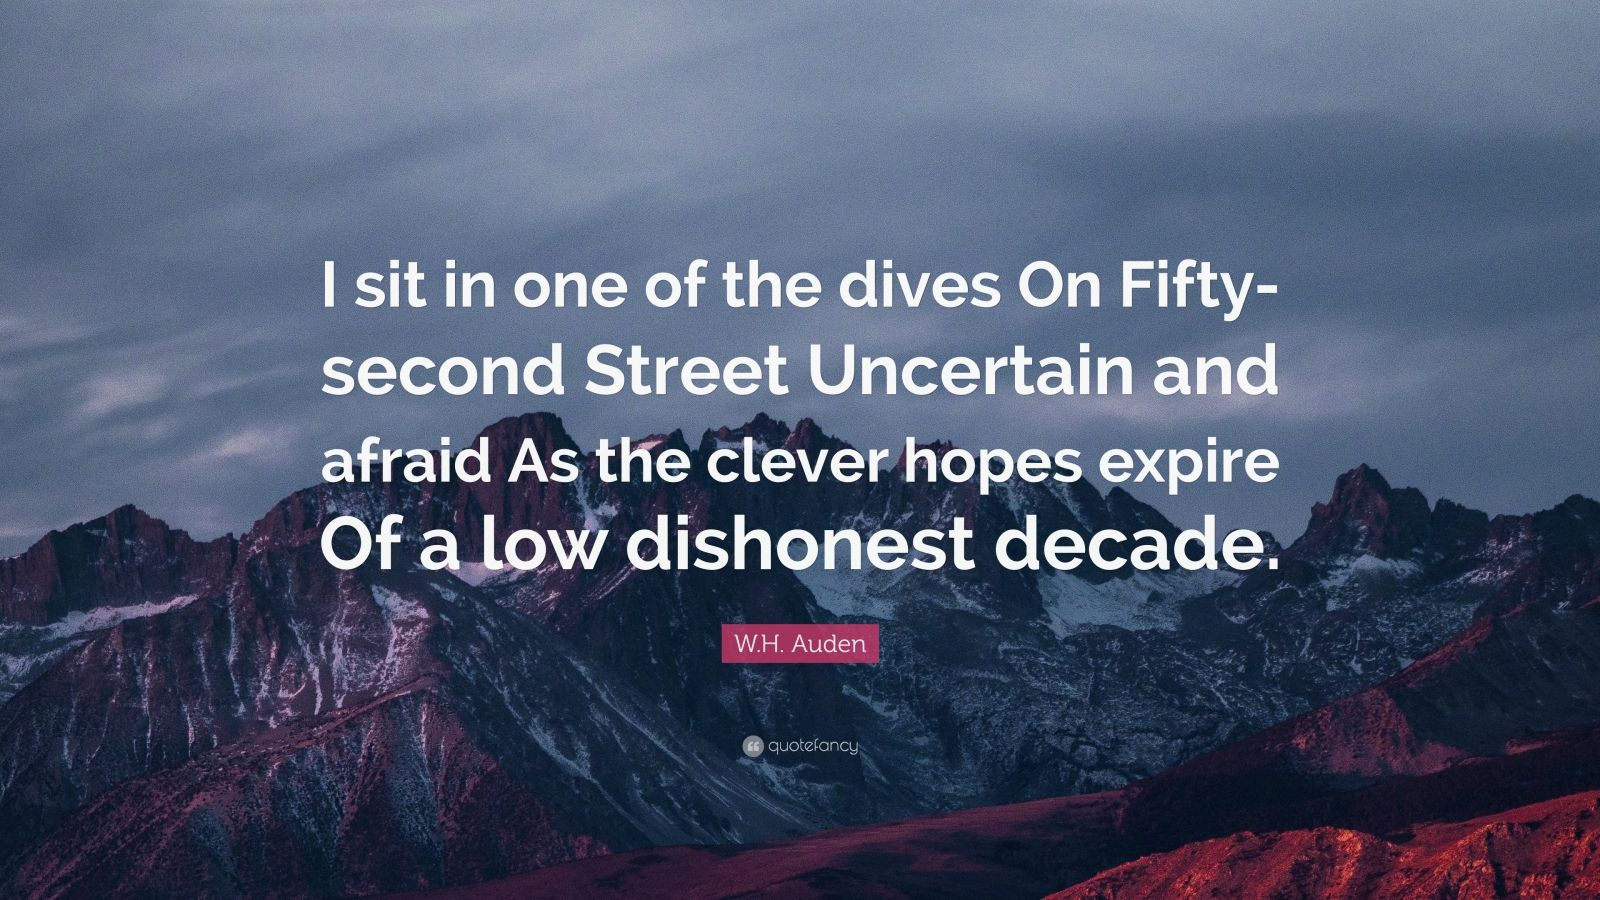 """W.H. Auden Quote: """"I sit in one of the dives On Fifty-second Street Uncertain and afraid As the clever hopes expire Of a low dishonest decade."""""""